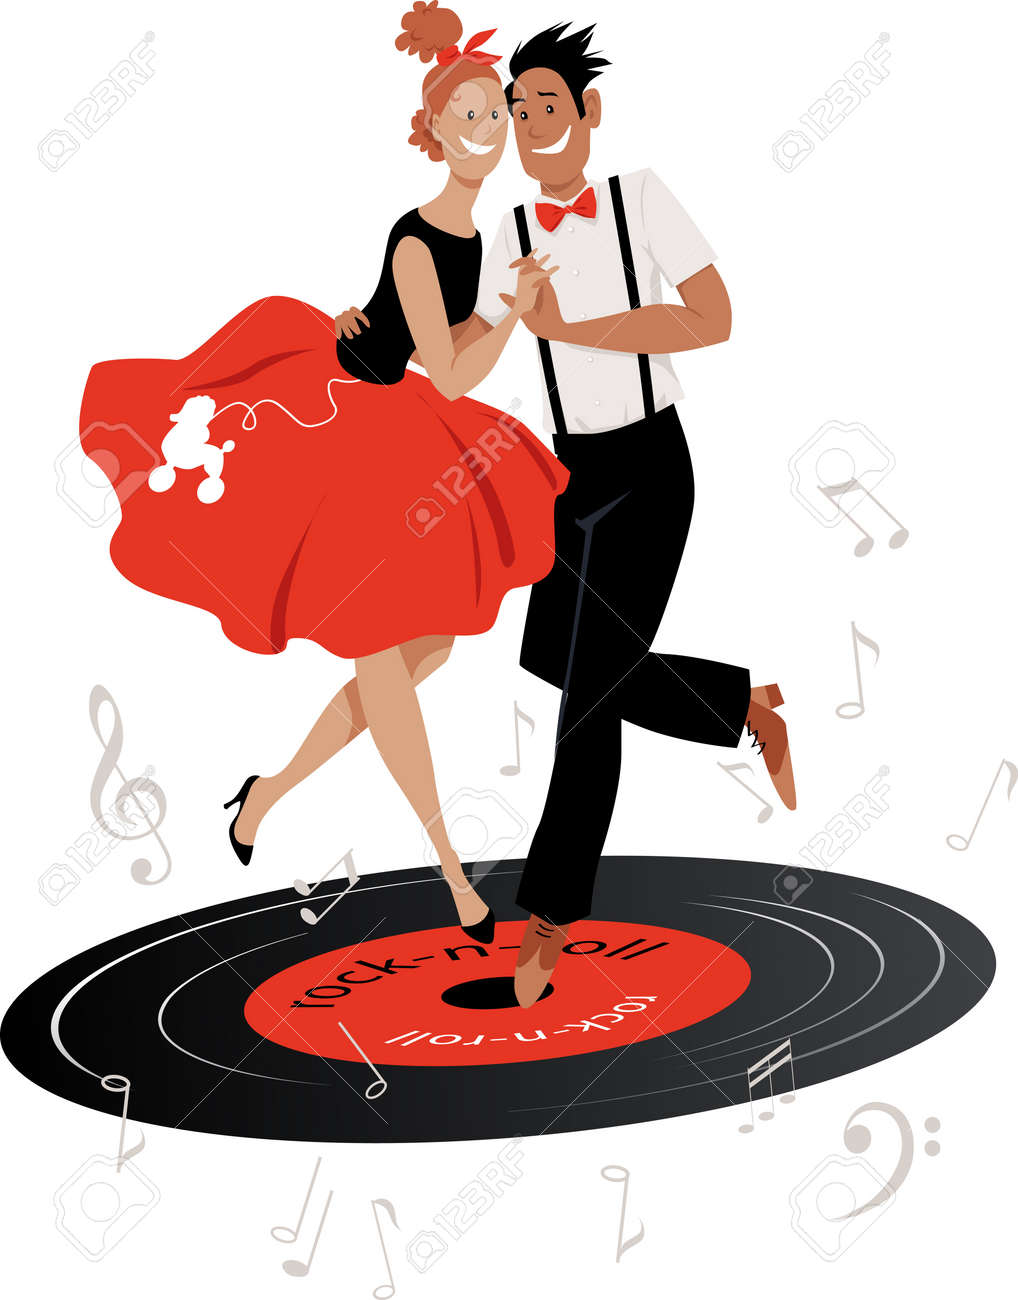 Cartoon couple in vintage clothing dancing rock-and-roll on a vinyl record, EPS 8 vector illustration - 111916025